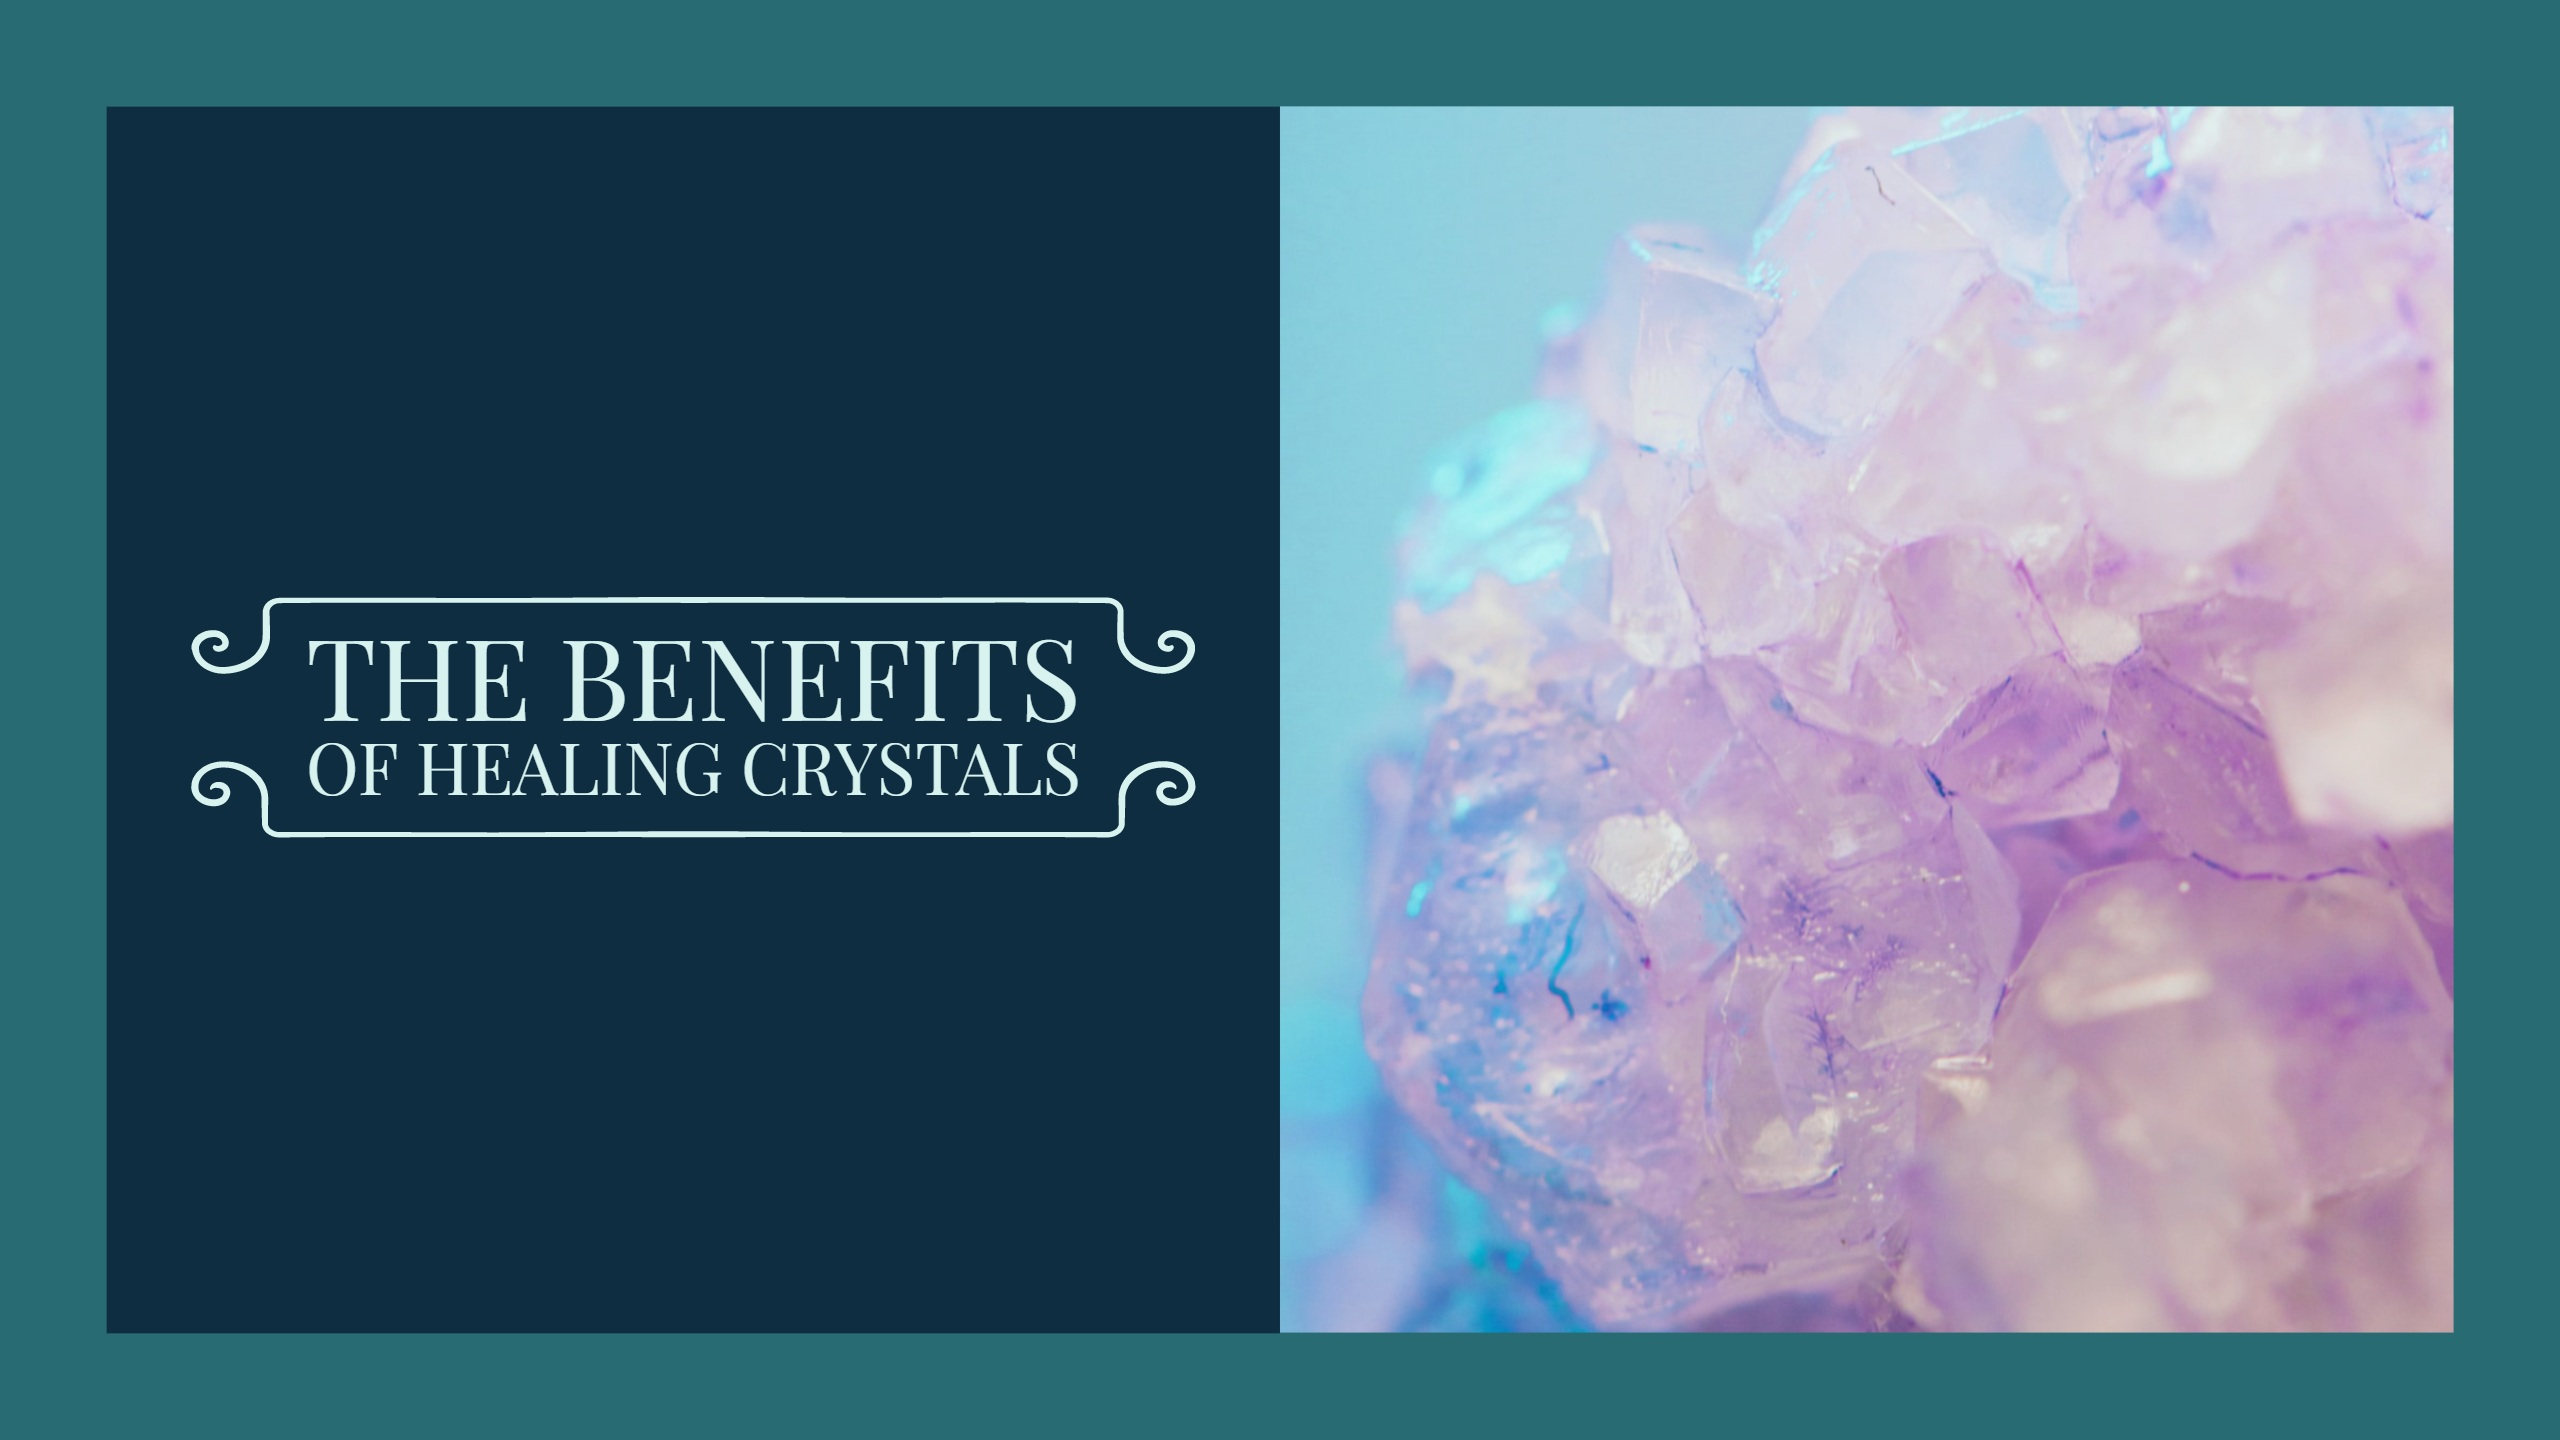 The Benefits of Healing Crystals